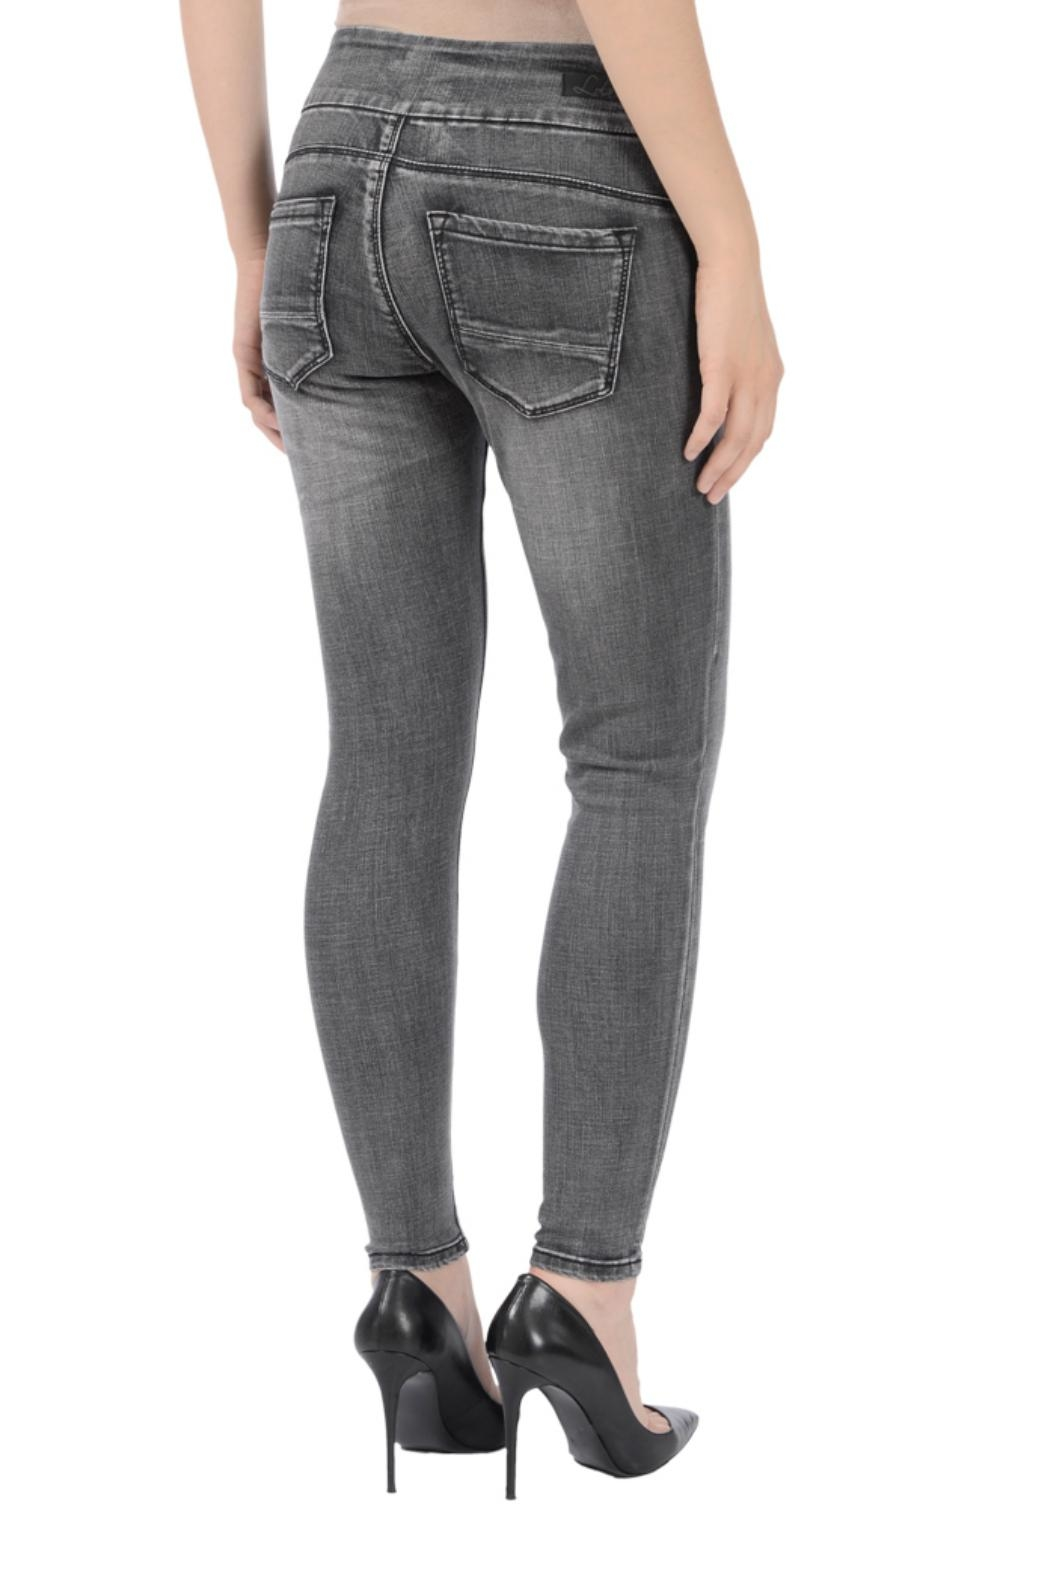 Lola Jeans Julia Pull-On Jeans - Side Cropped Image